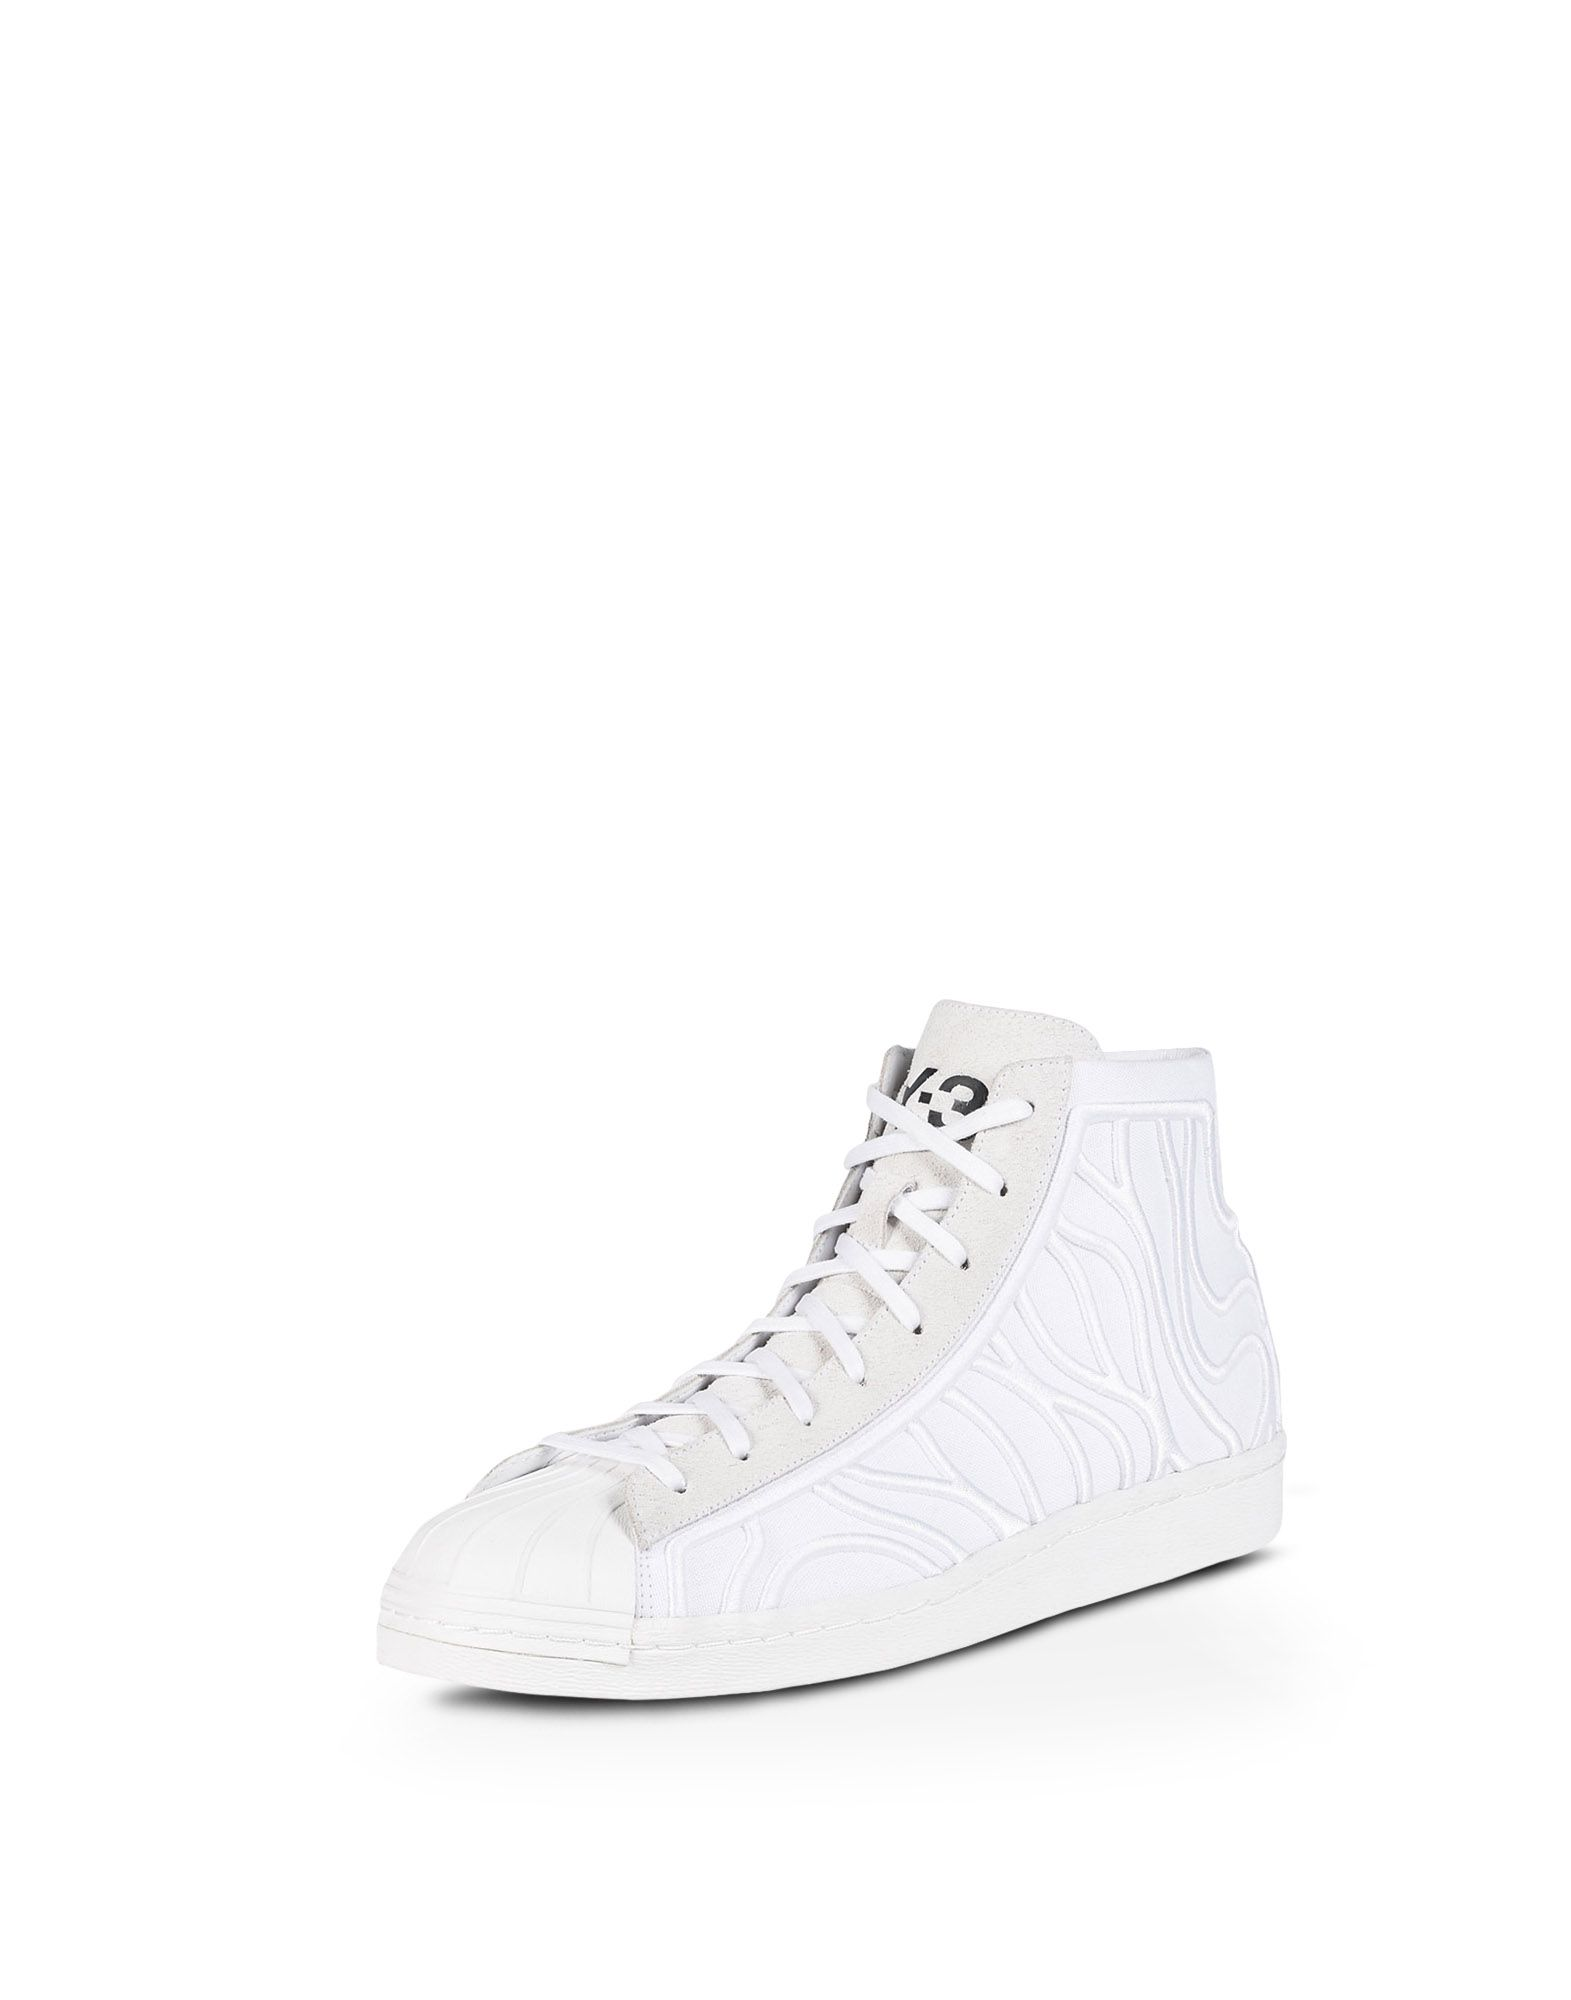 Y-3 Y-3 SHISHU SUPER High-top sneakers E r